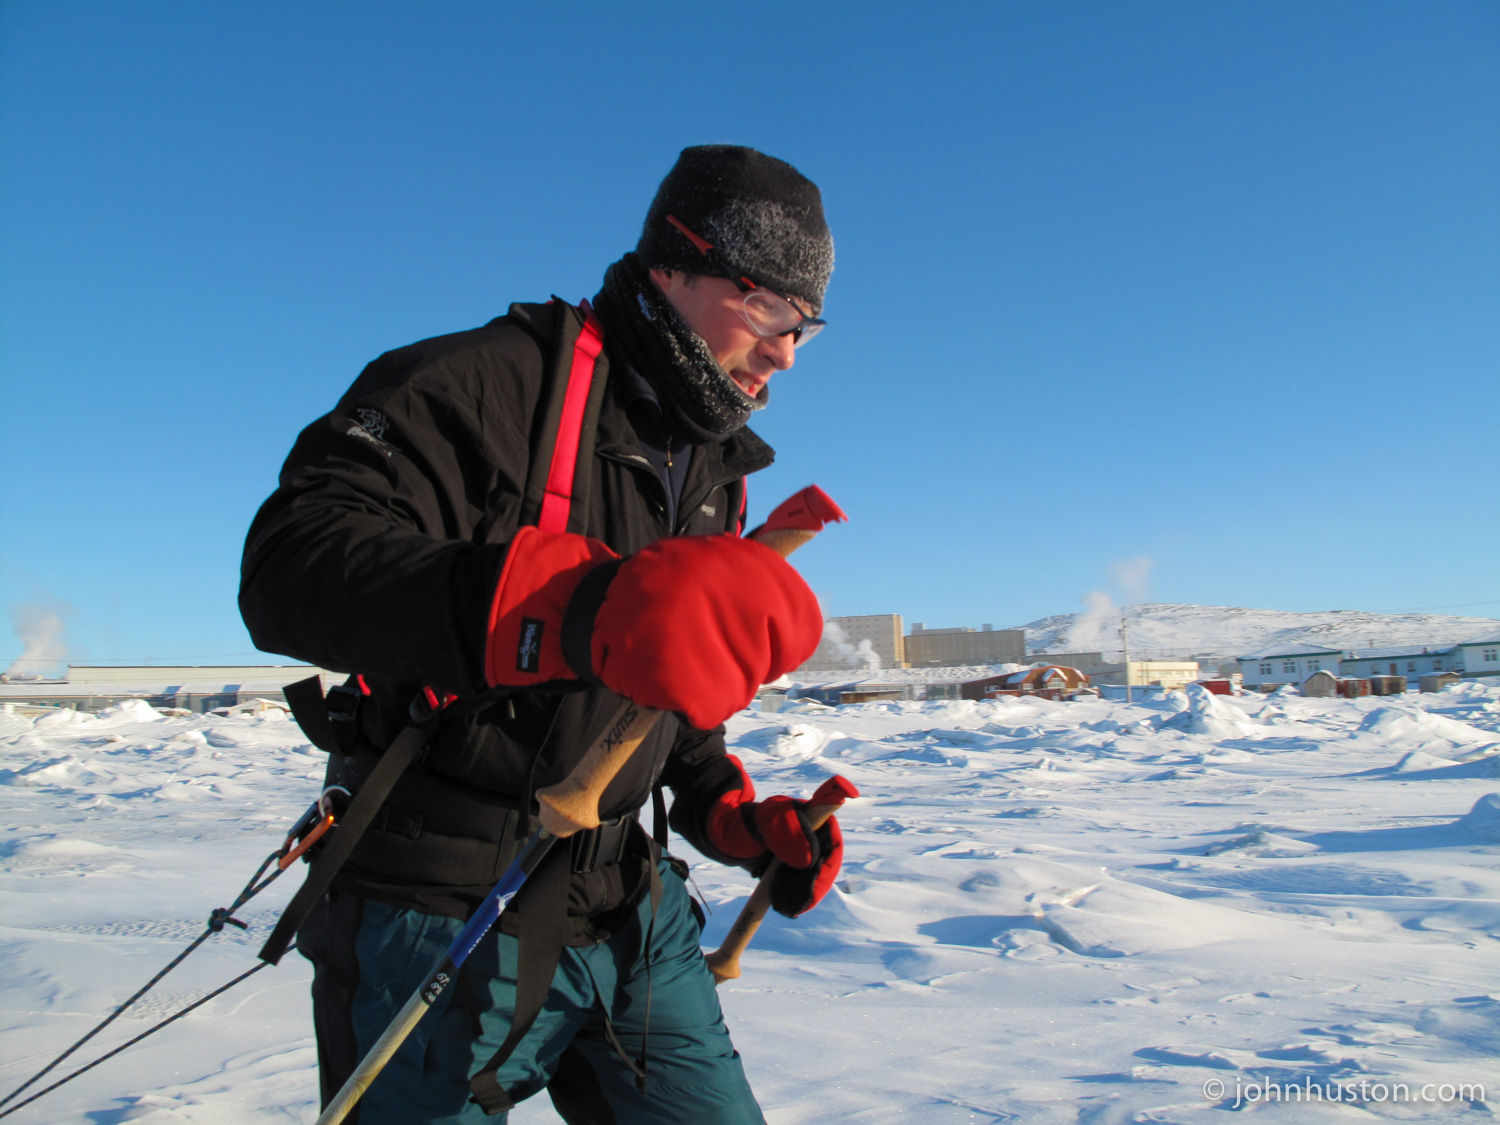 Tyler, with Iqaluit in the background.